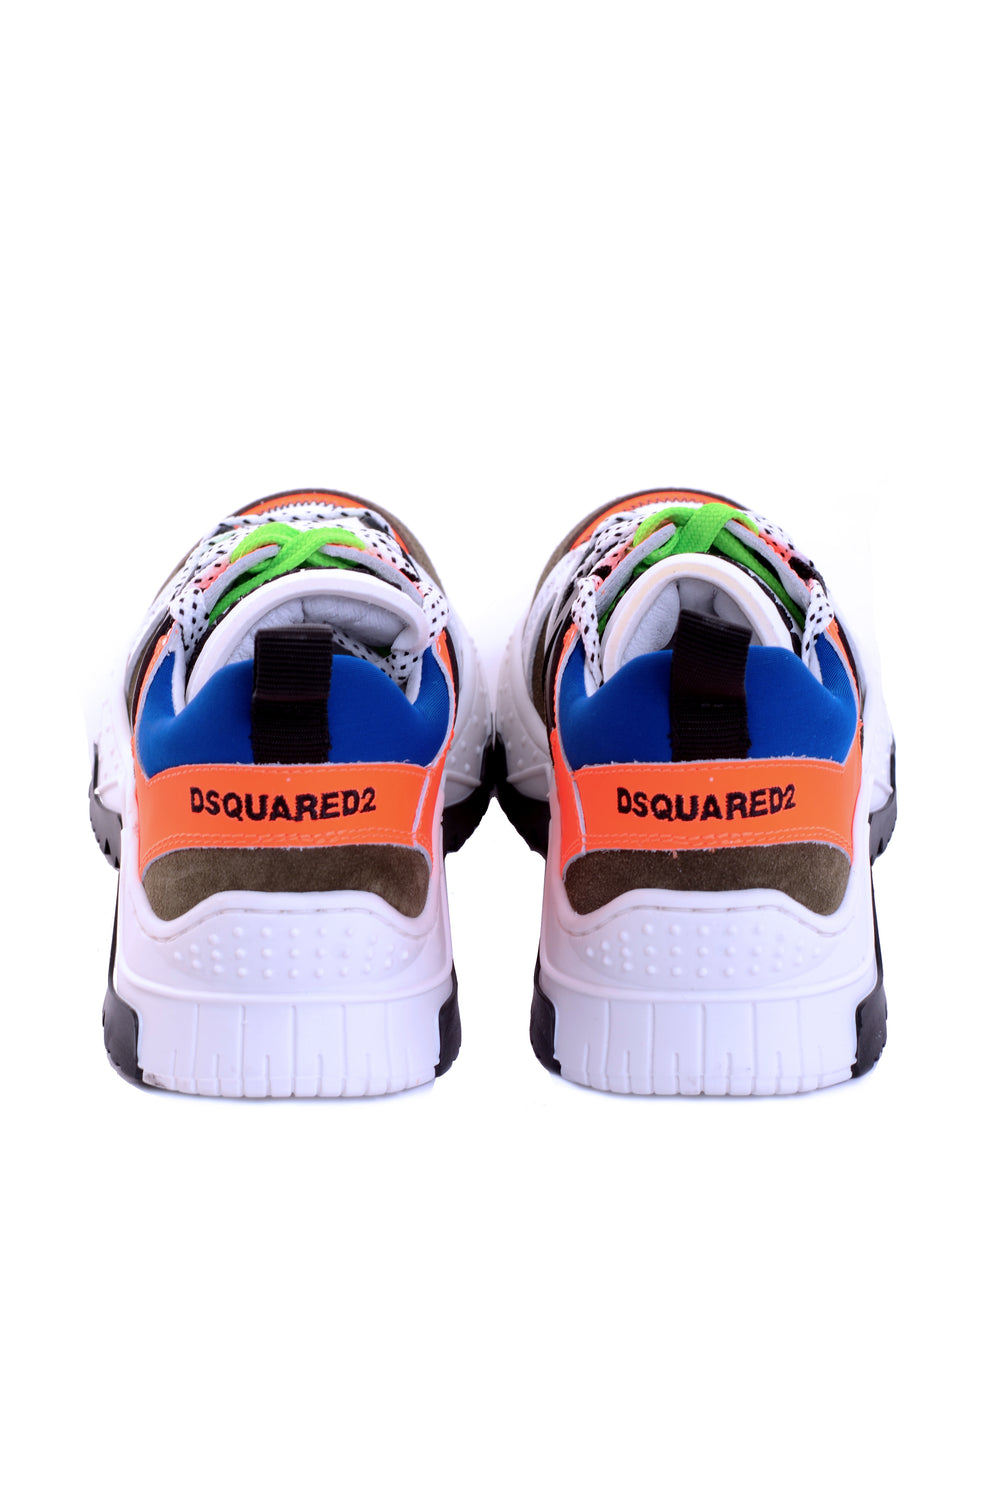 DSQUARED2 KIDS Colour Block Sneakers